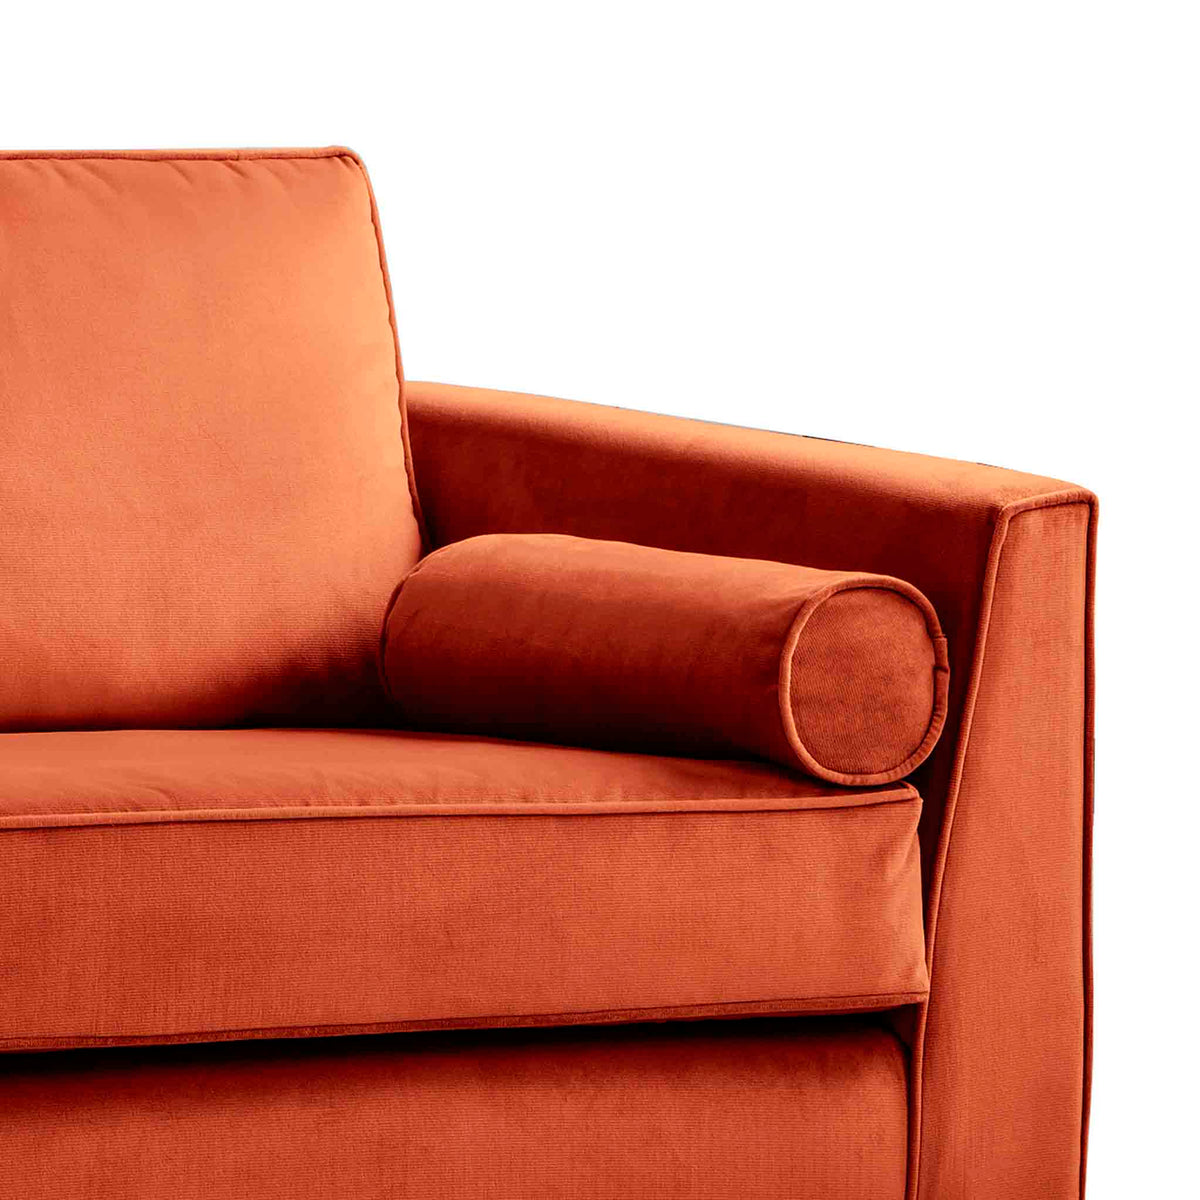 Ikon Apricot 3 Seater Sofa - Close up of arm rest